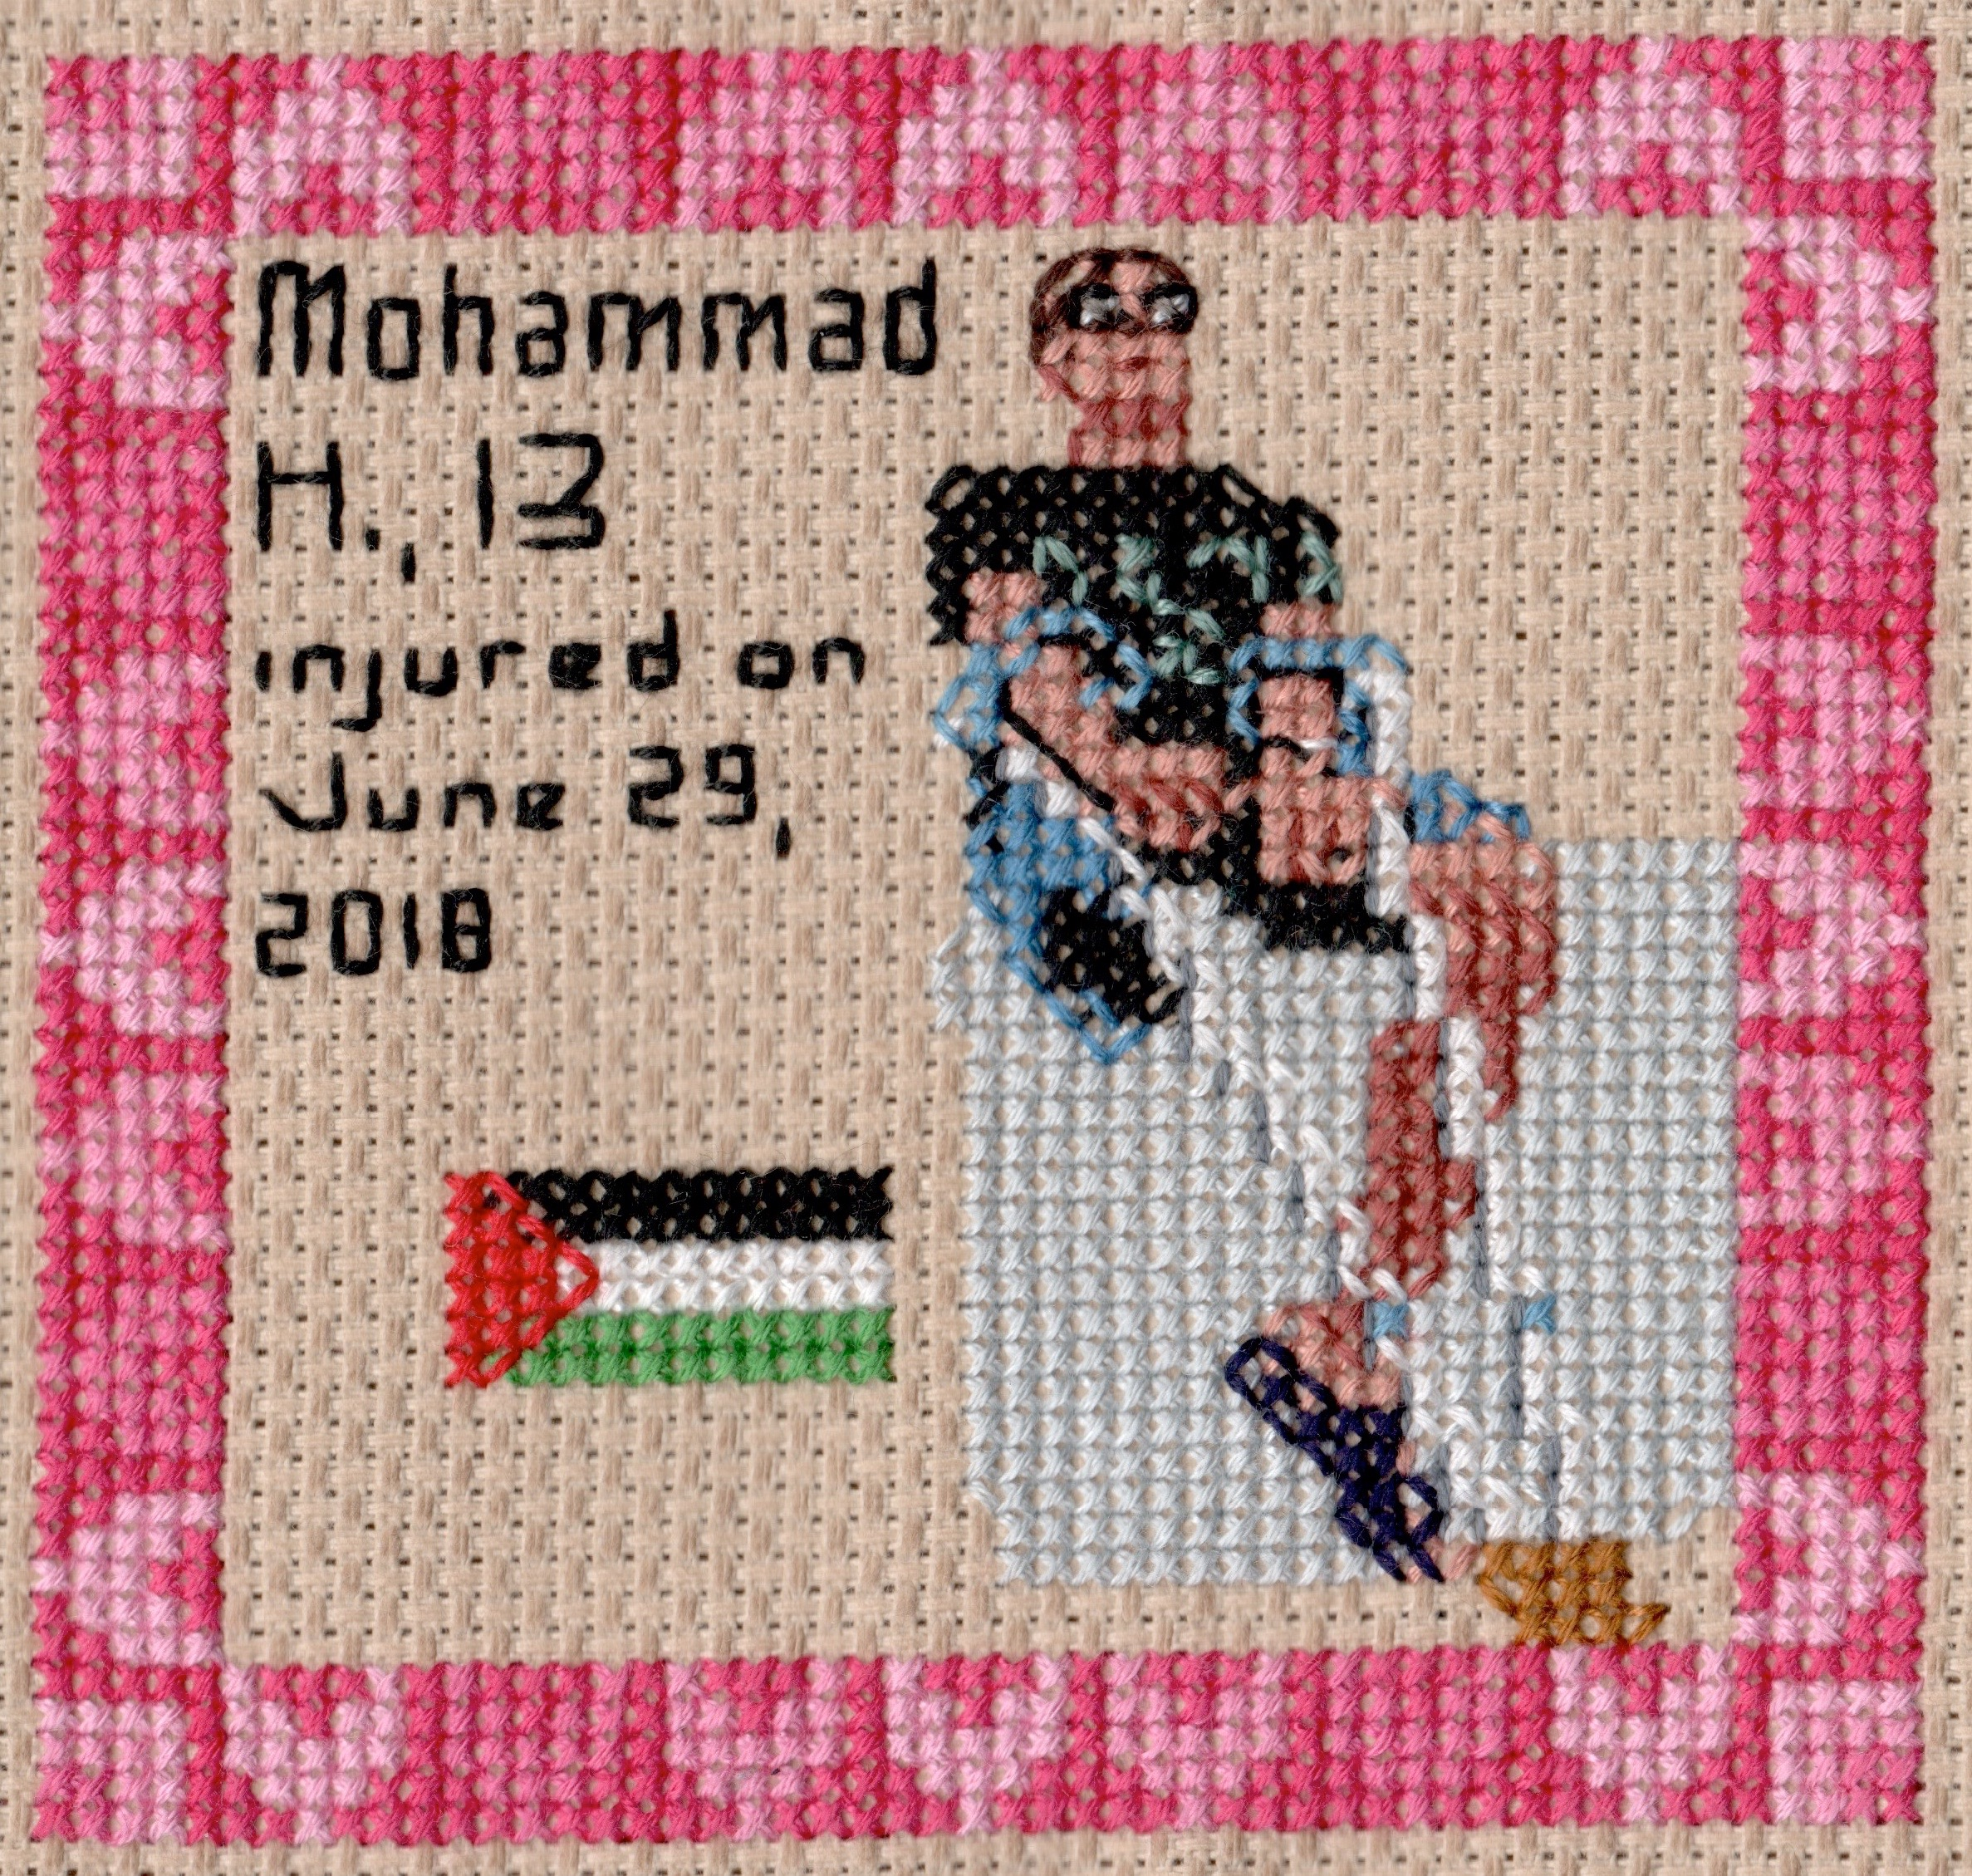 19 Mohammad H